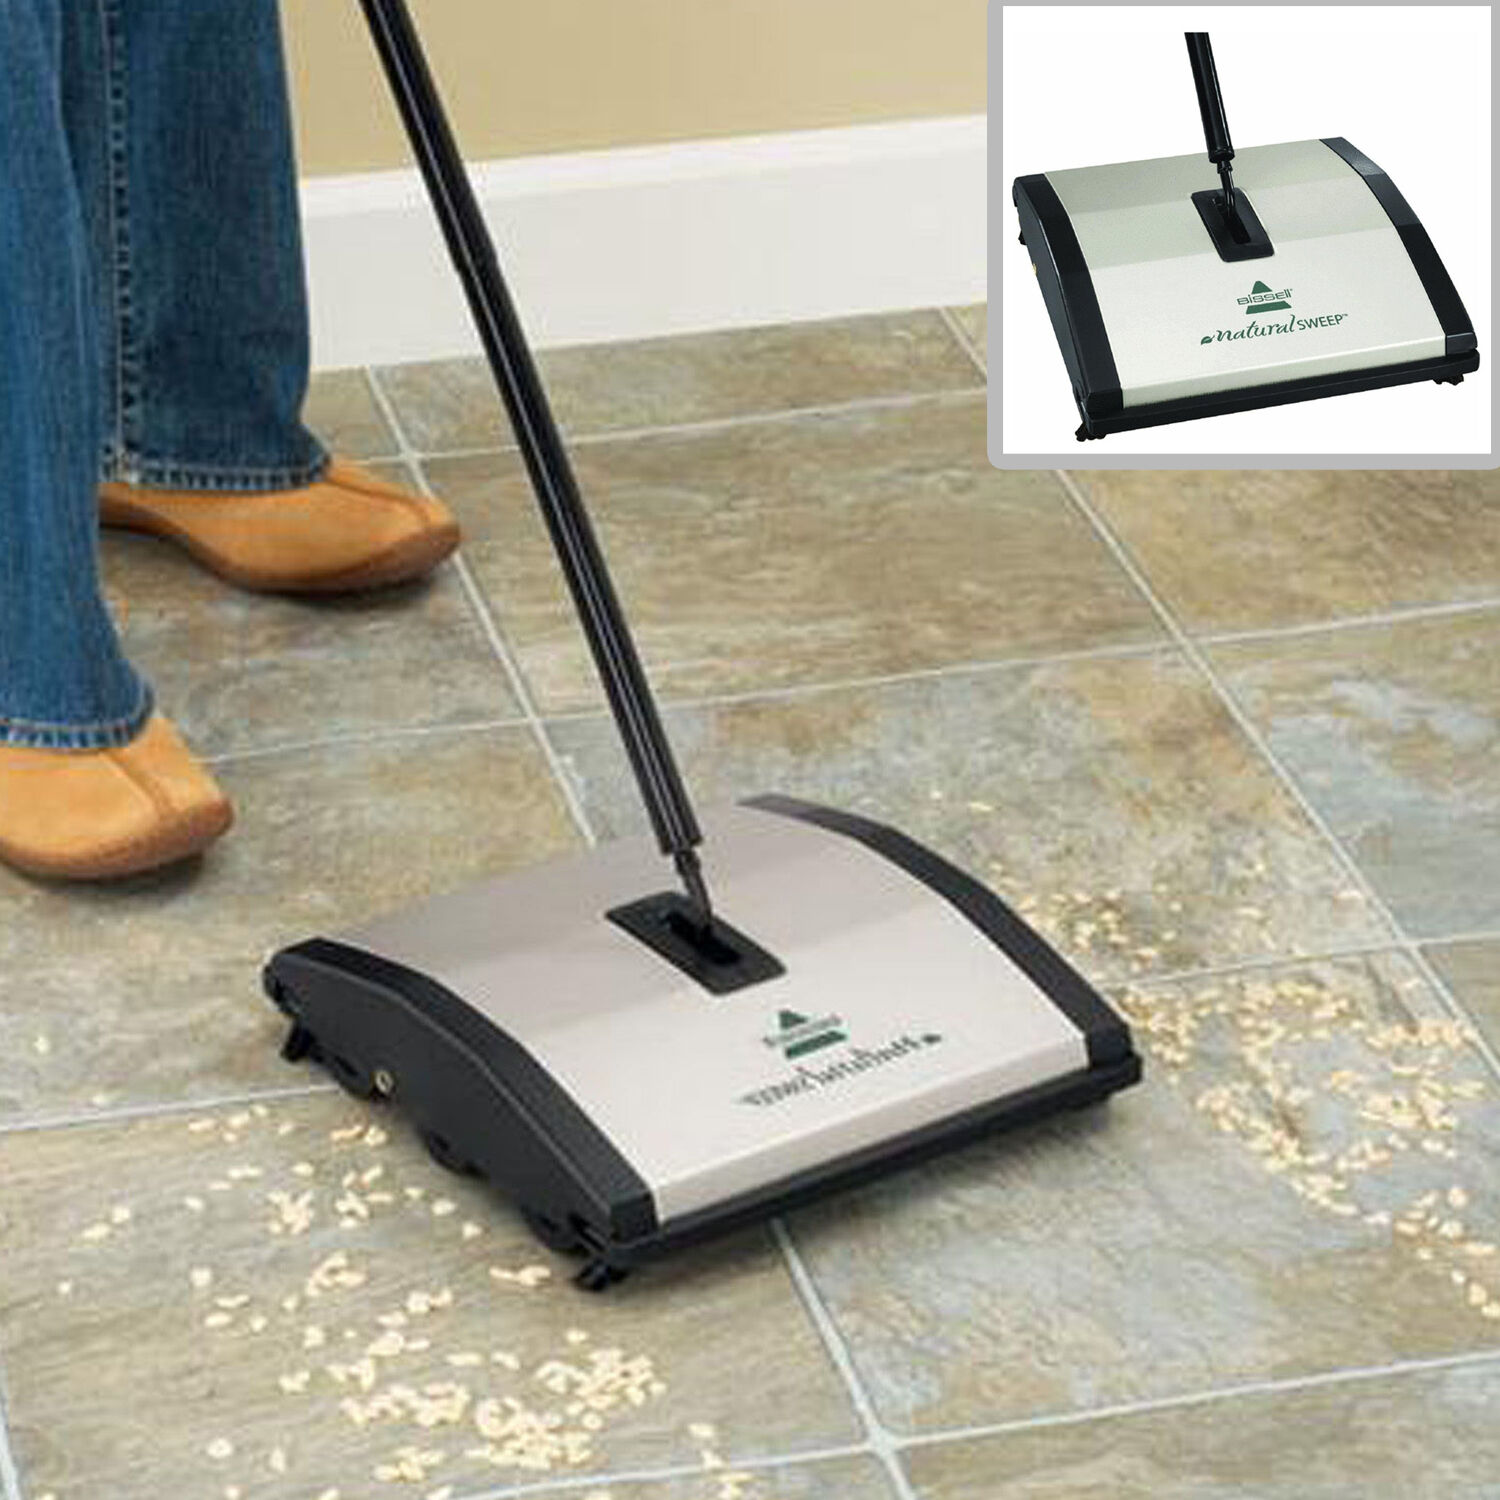 bissell solution wash floors hard hardwood of vac fingerhut tile cleaner floor and gallery crosswave wood in carpet